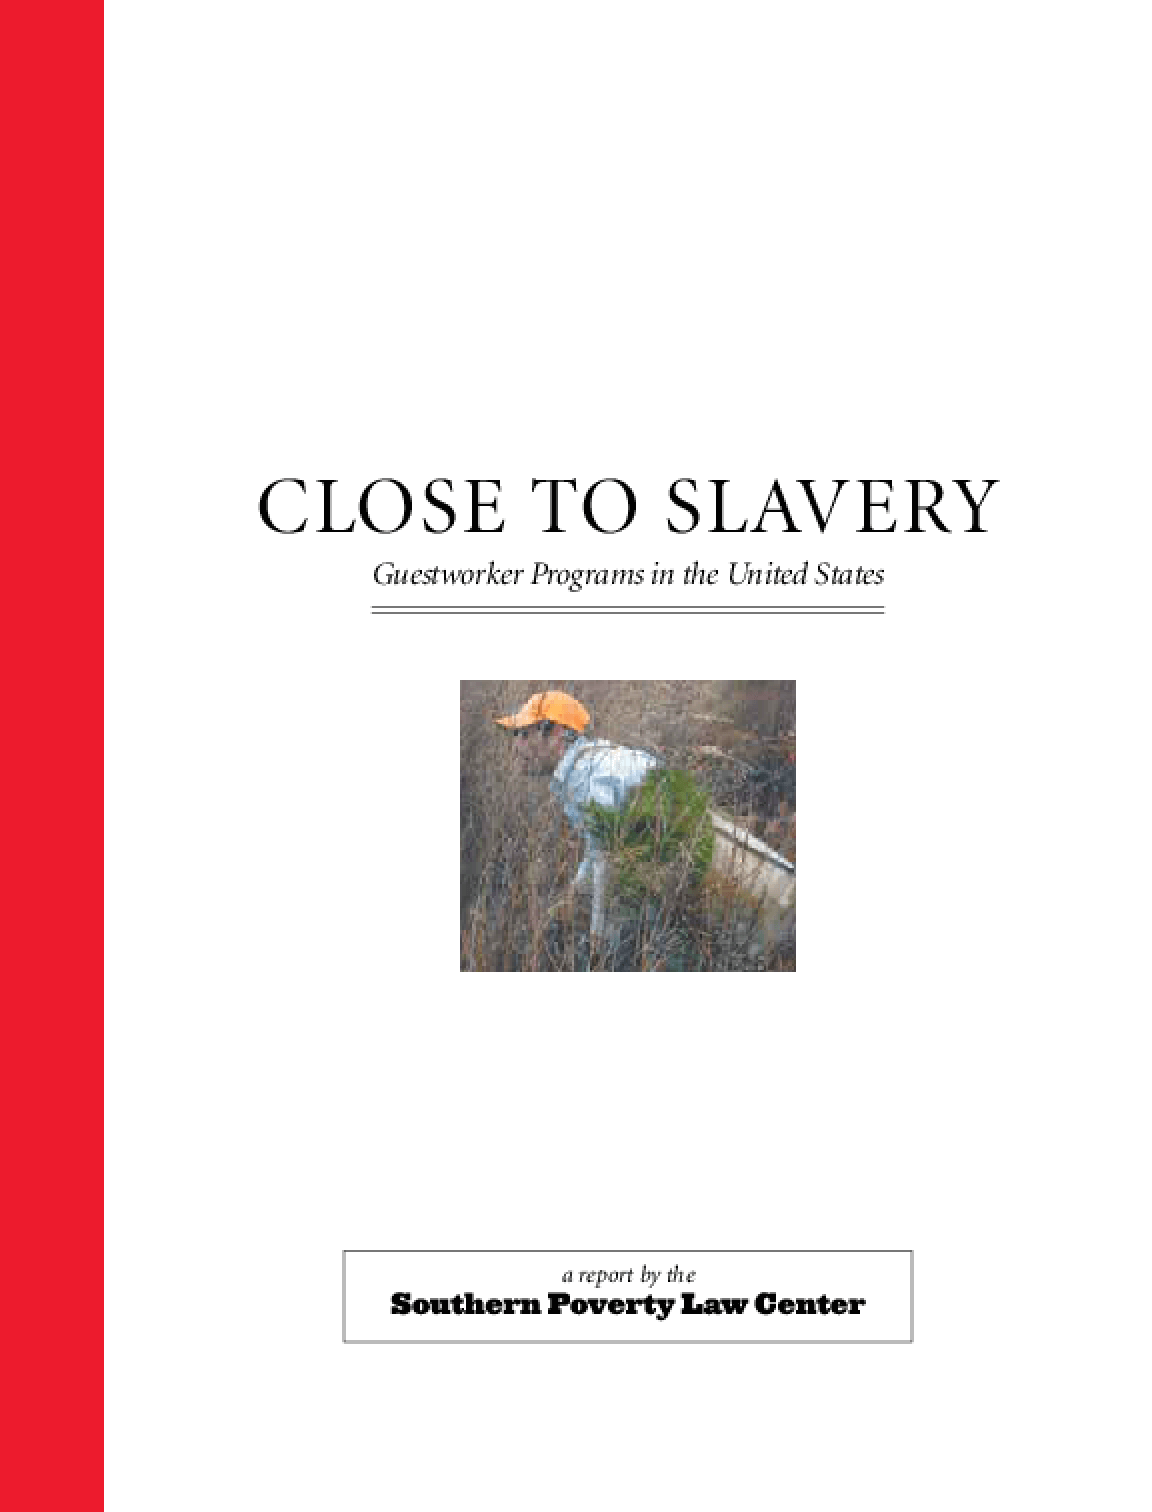 Close to Slavery: Guestworker Programs in the United States